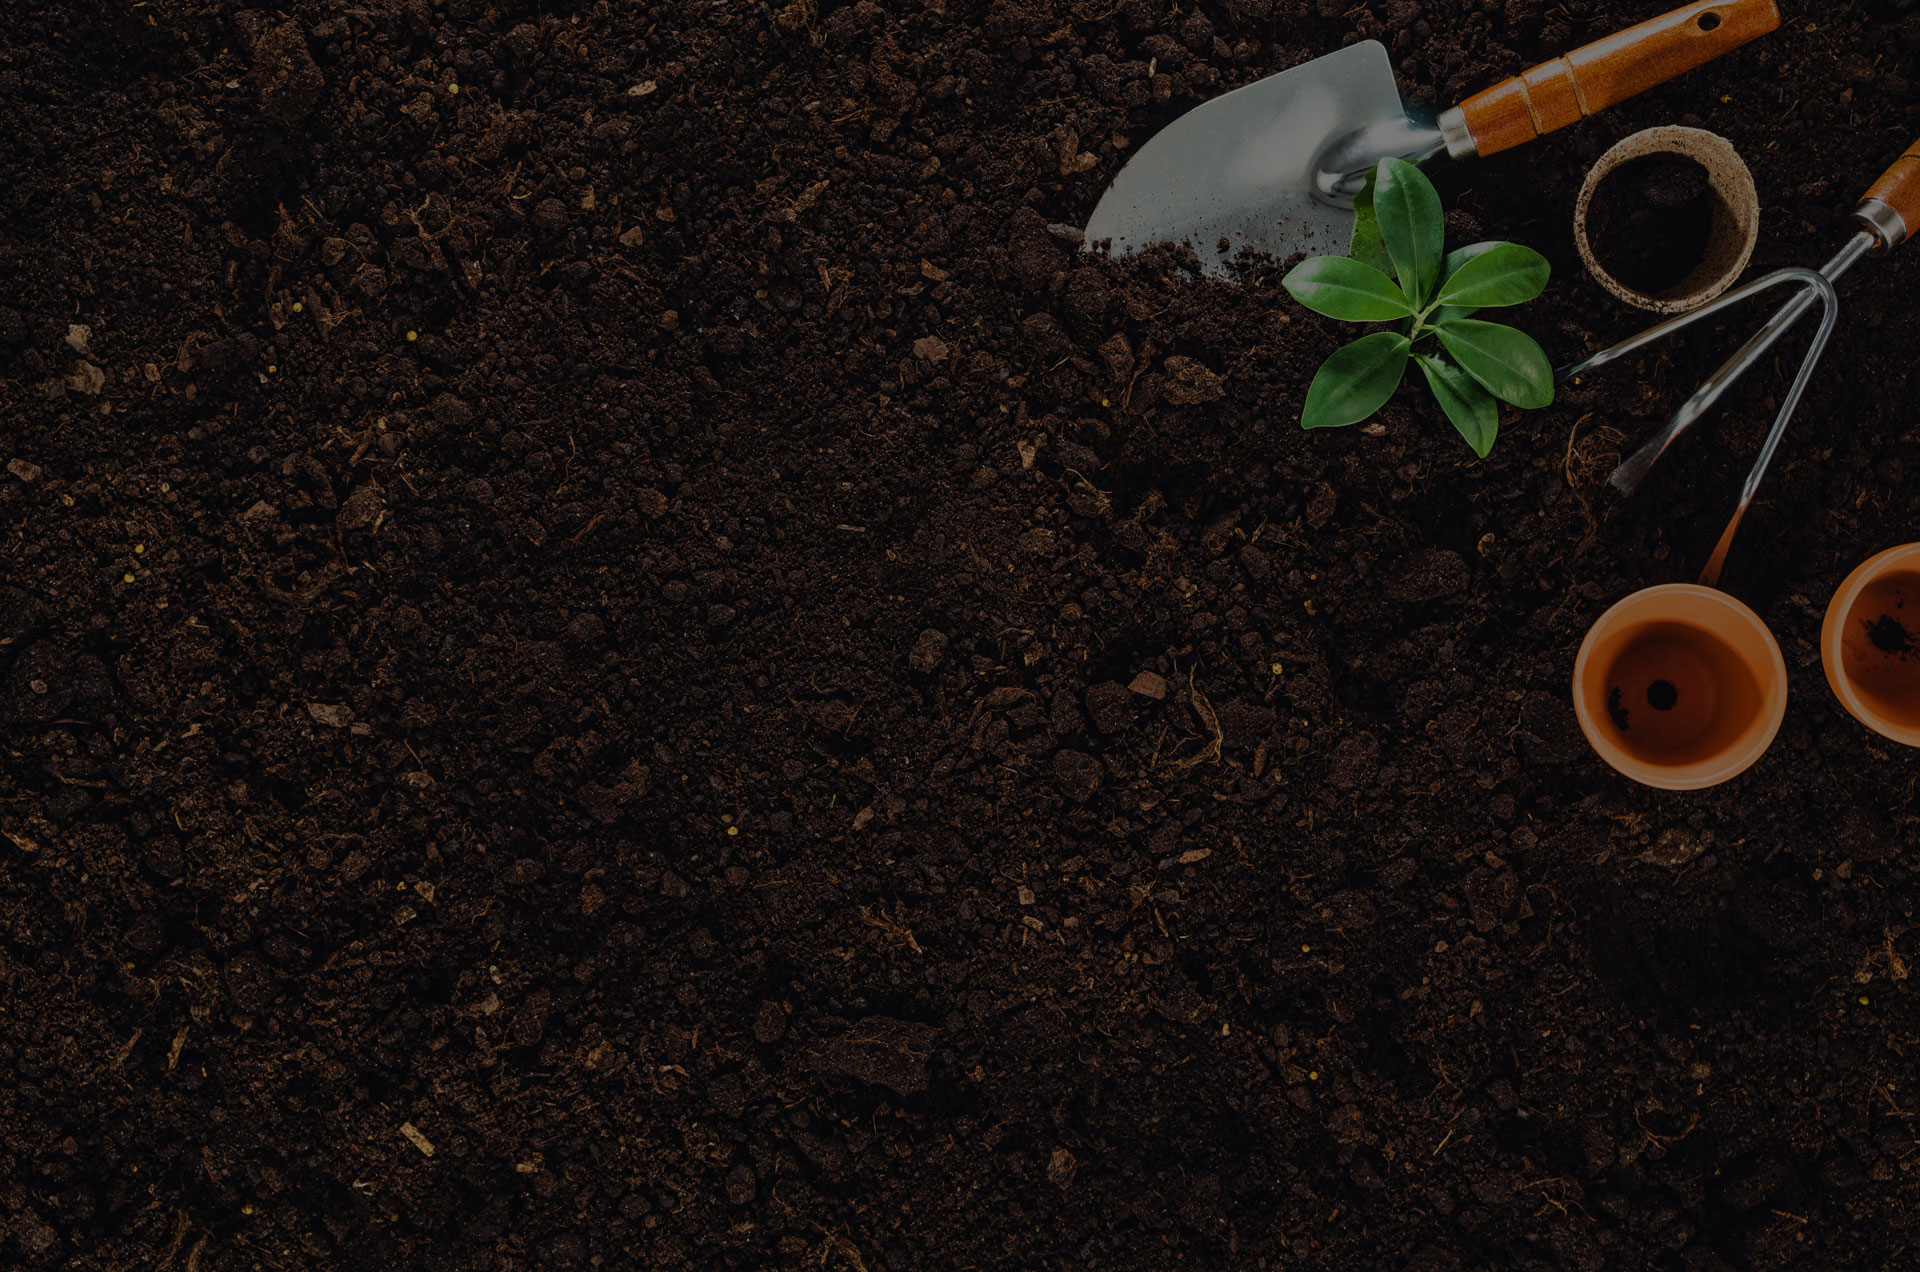 Gardening tools on fertile soil texture background seen from above